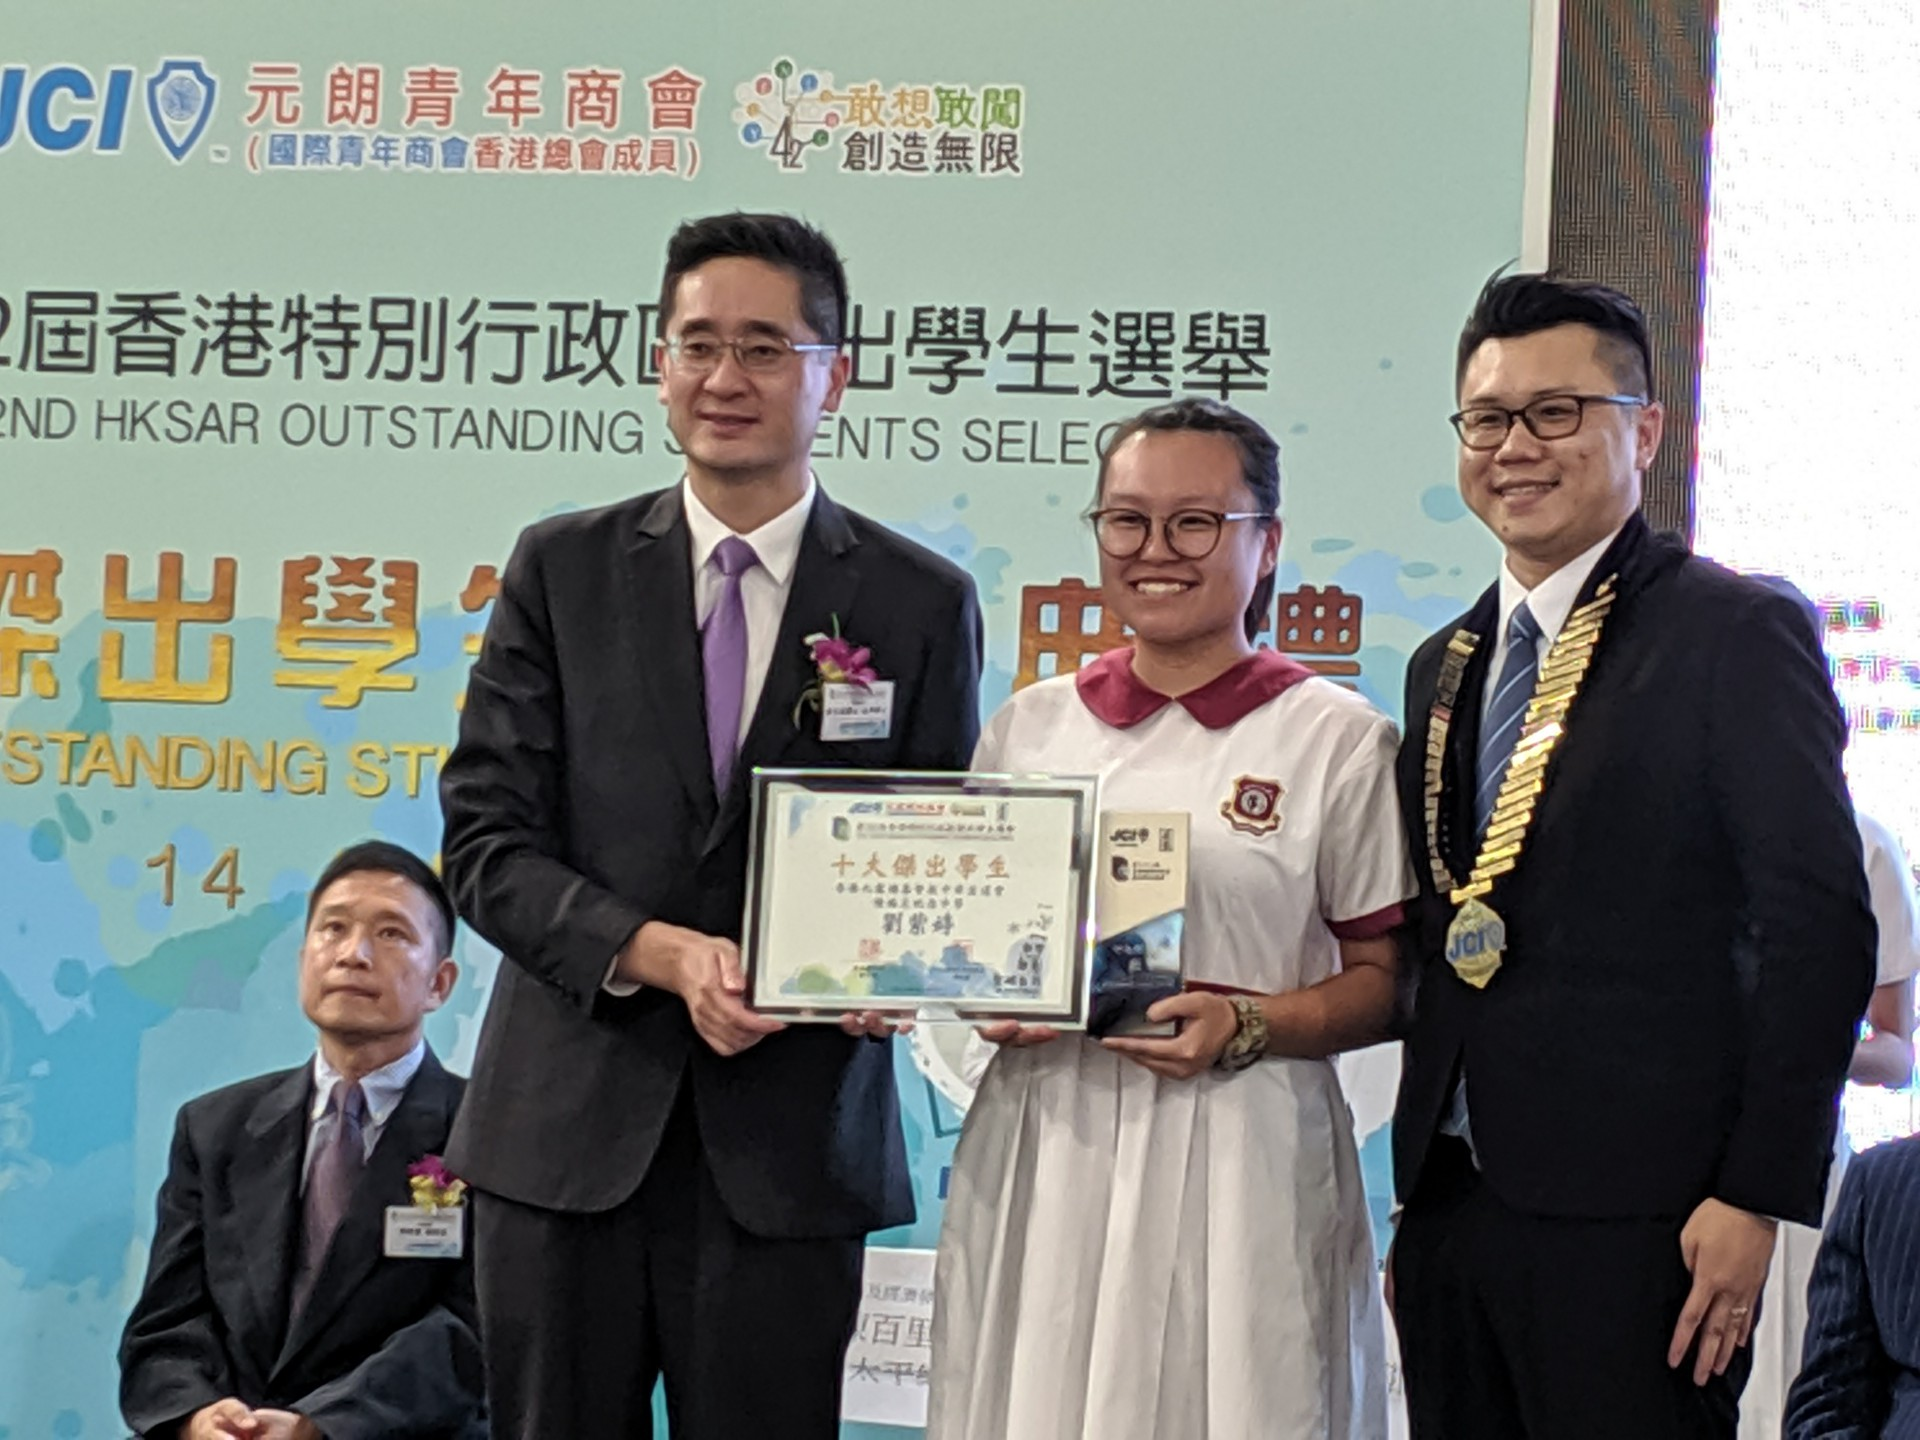 6D Lau Tsz Ting was selected as one of the Top Ten Outstanding Students in the 32nd Hong Kong Special Administrative Region Outstanding Students Selection 2019.